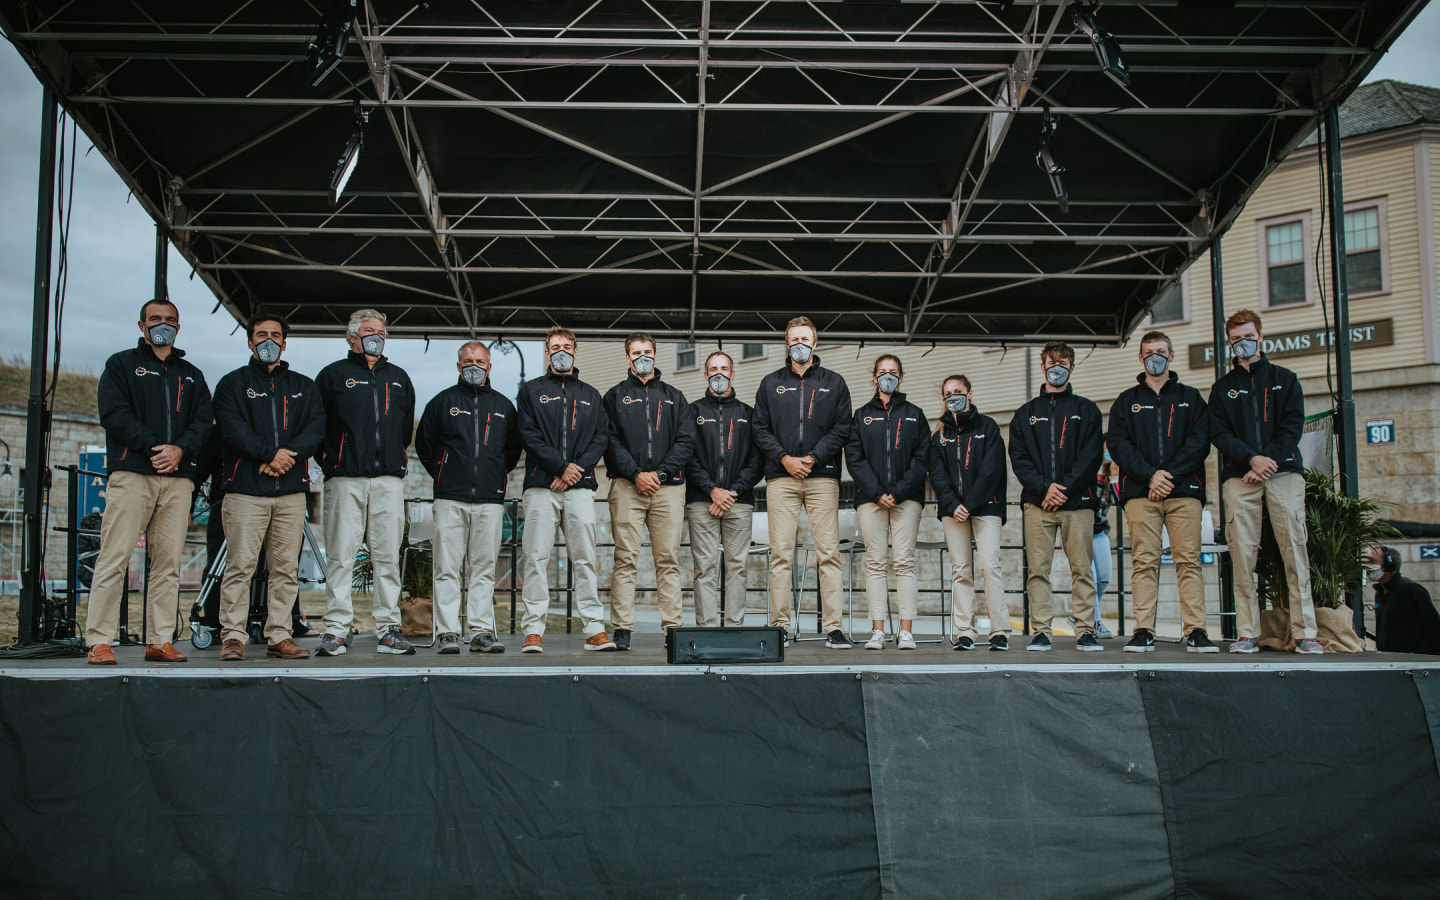 11th hour racing team on stage during a Homecoming event in Newport Rhode Island where three new sailors were announced